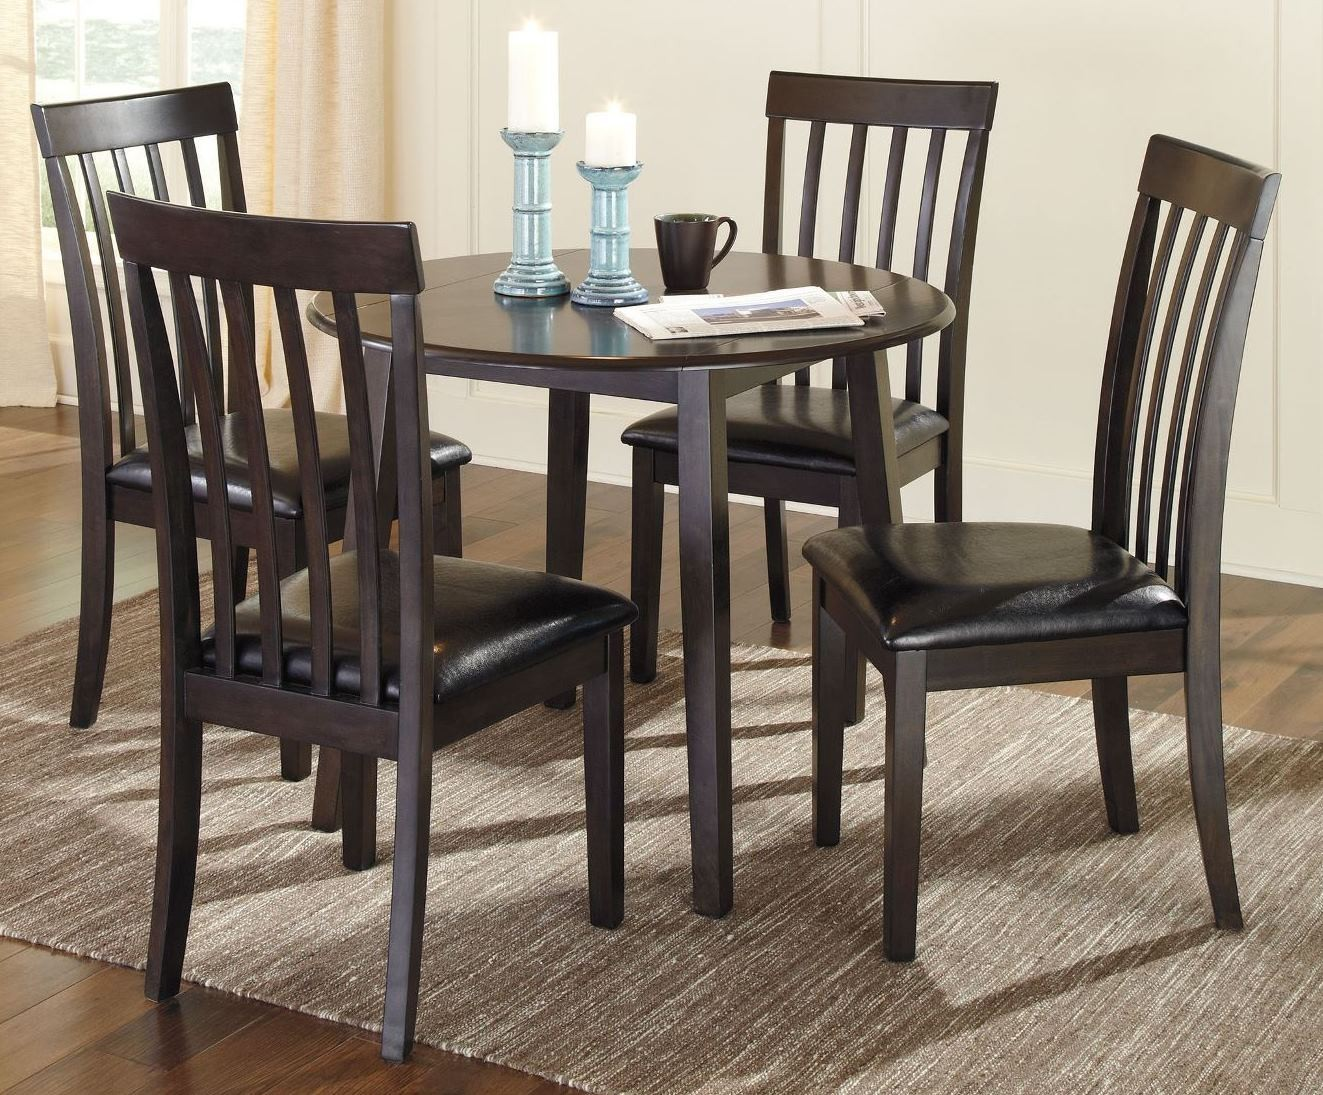 Round Dining Room Sets For 4 dining room set with leaves delano 7 piece dining room set w leaf